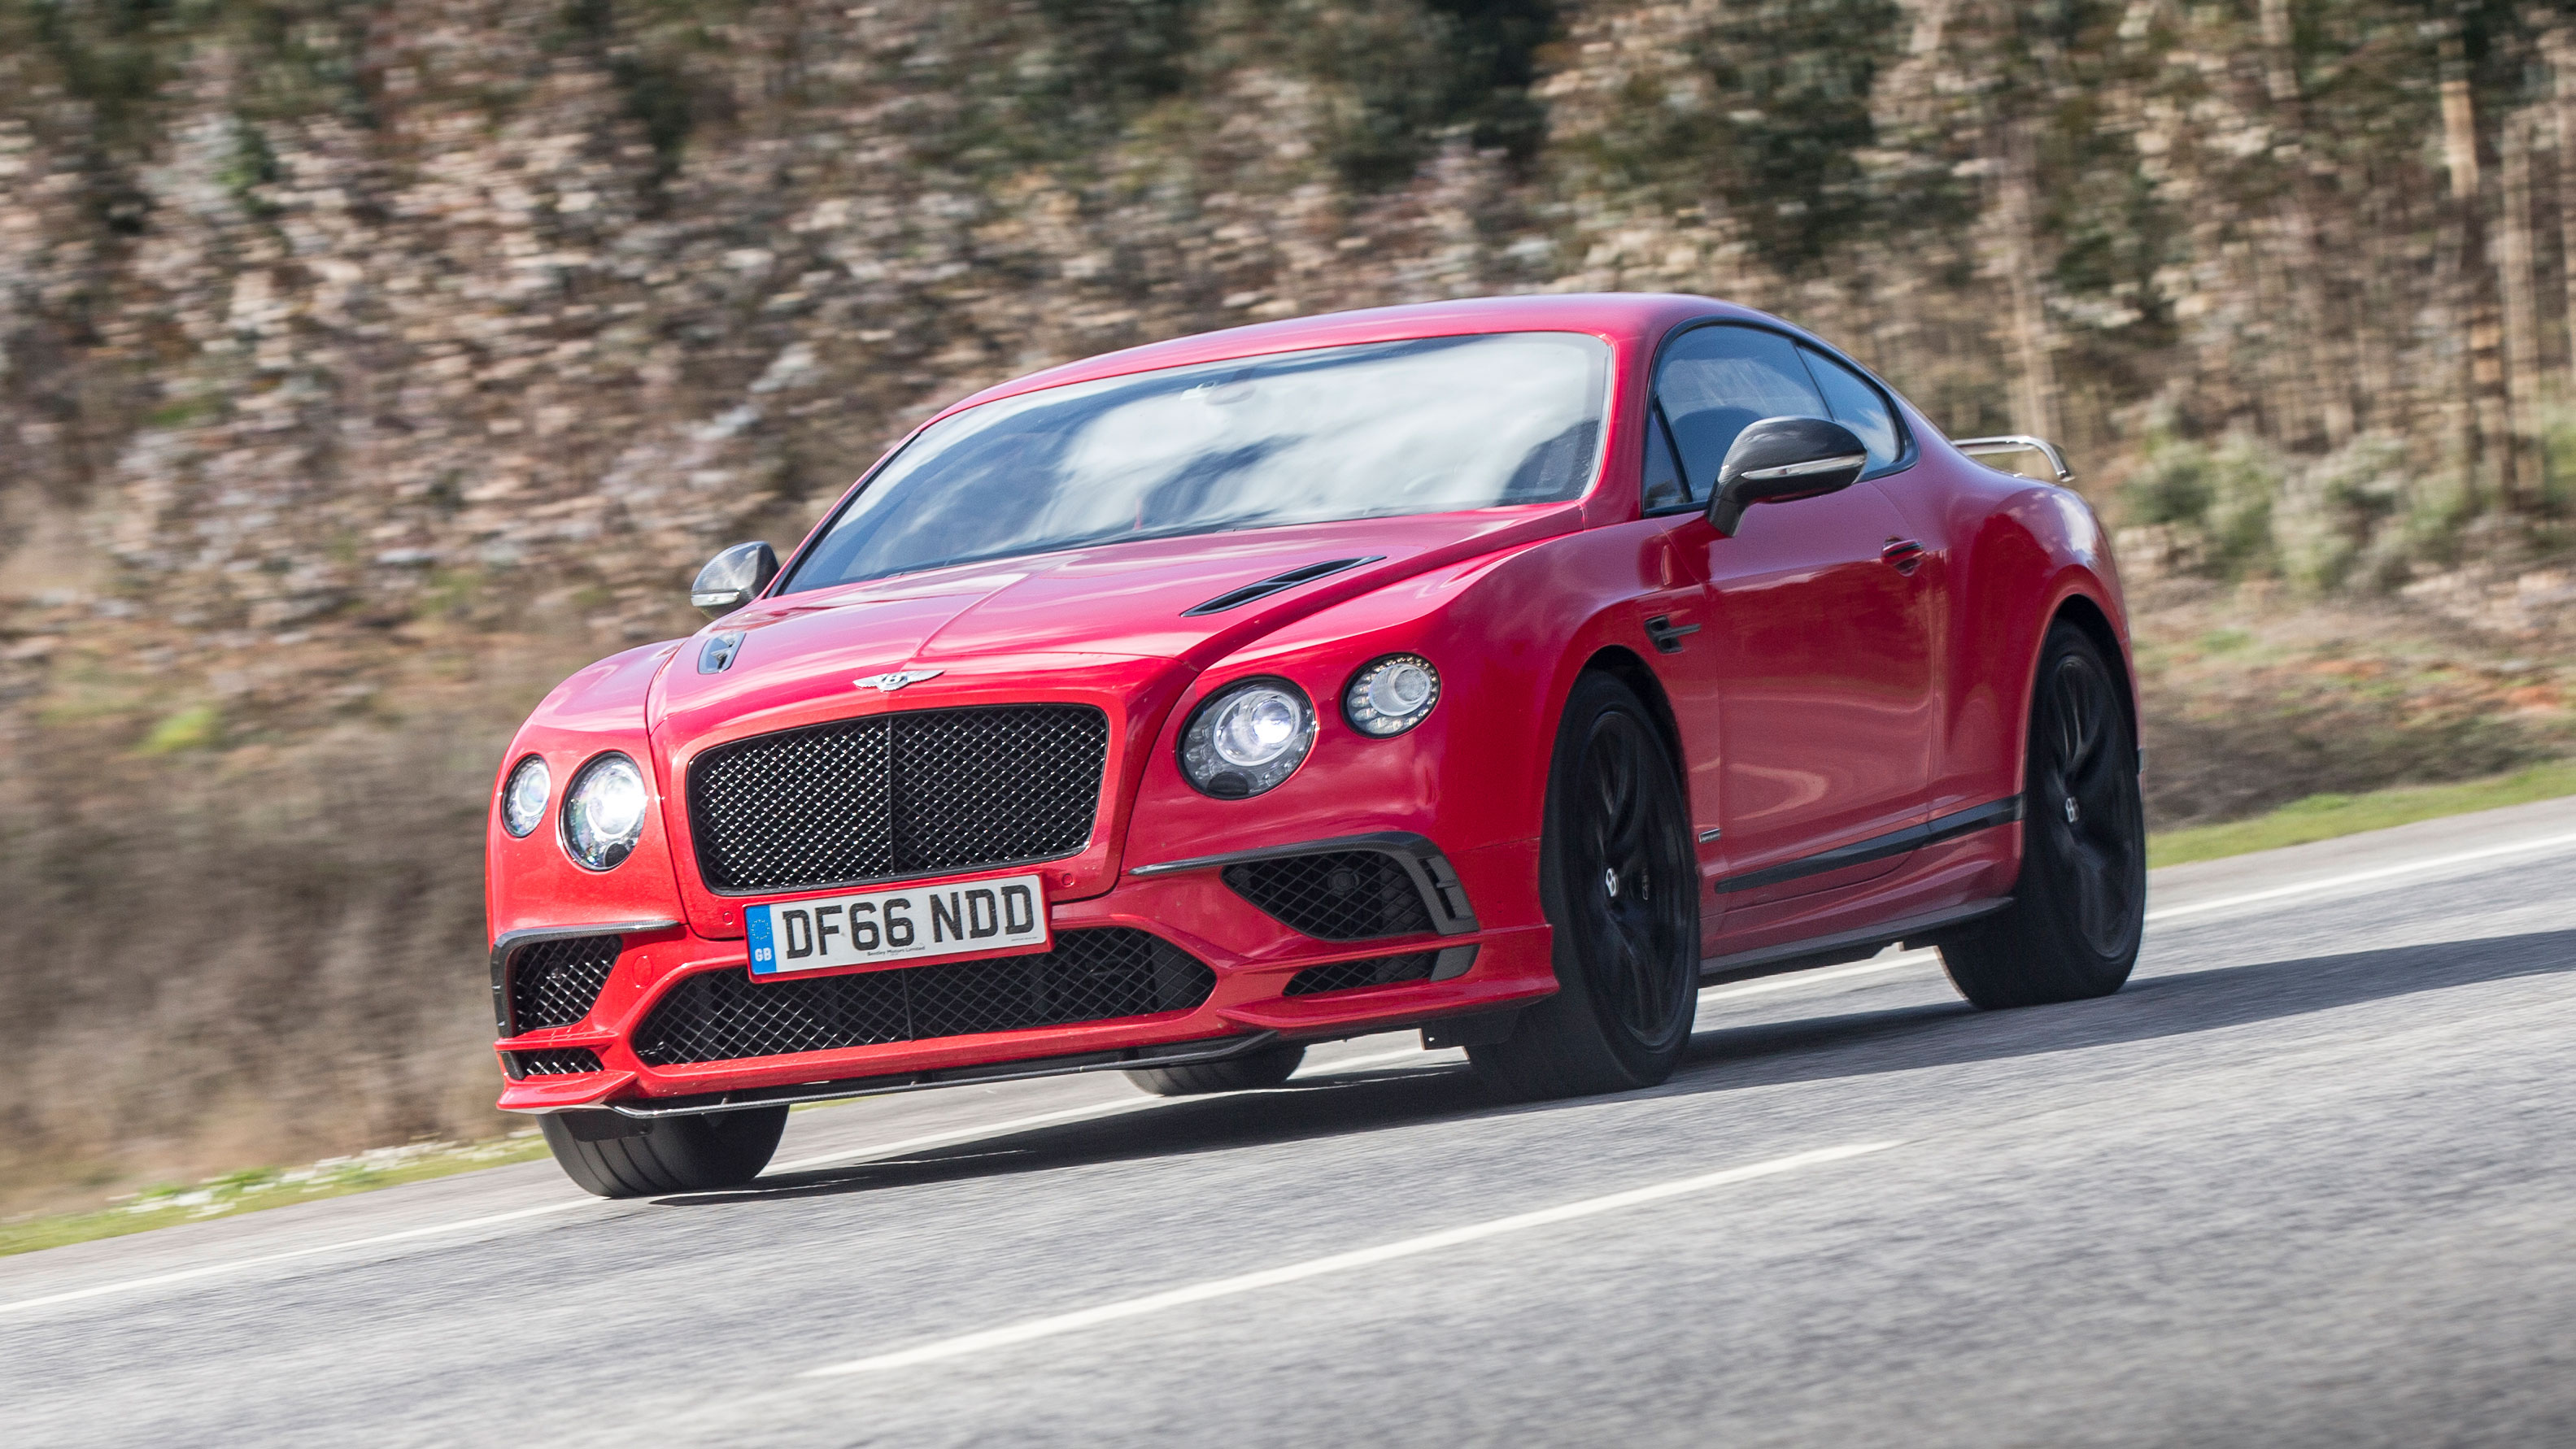 continental red of convertible st bentley wheel the james drive behind mph new cars supersports